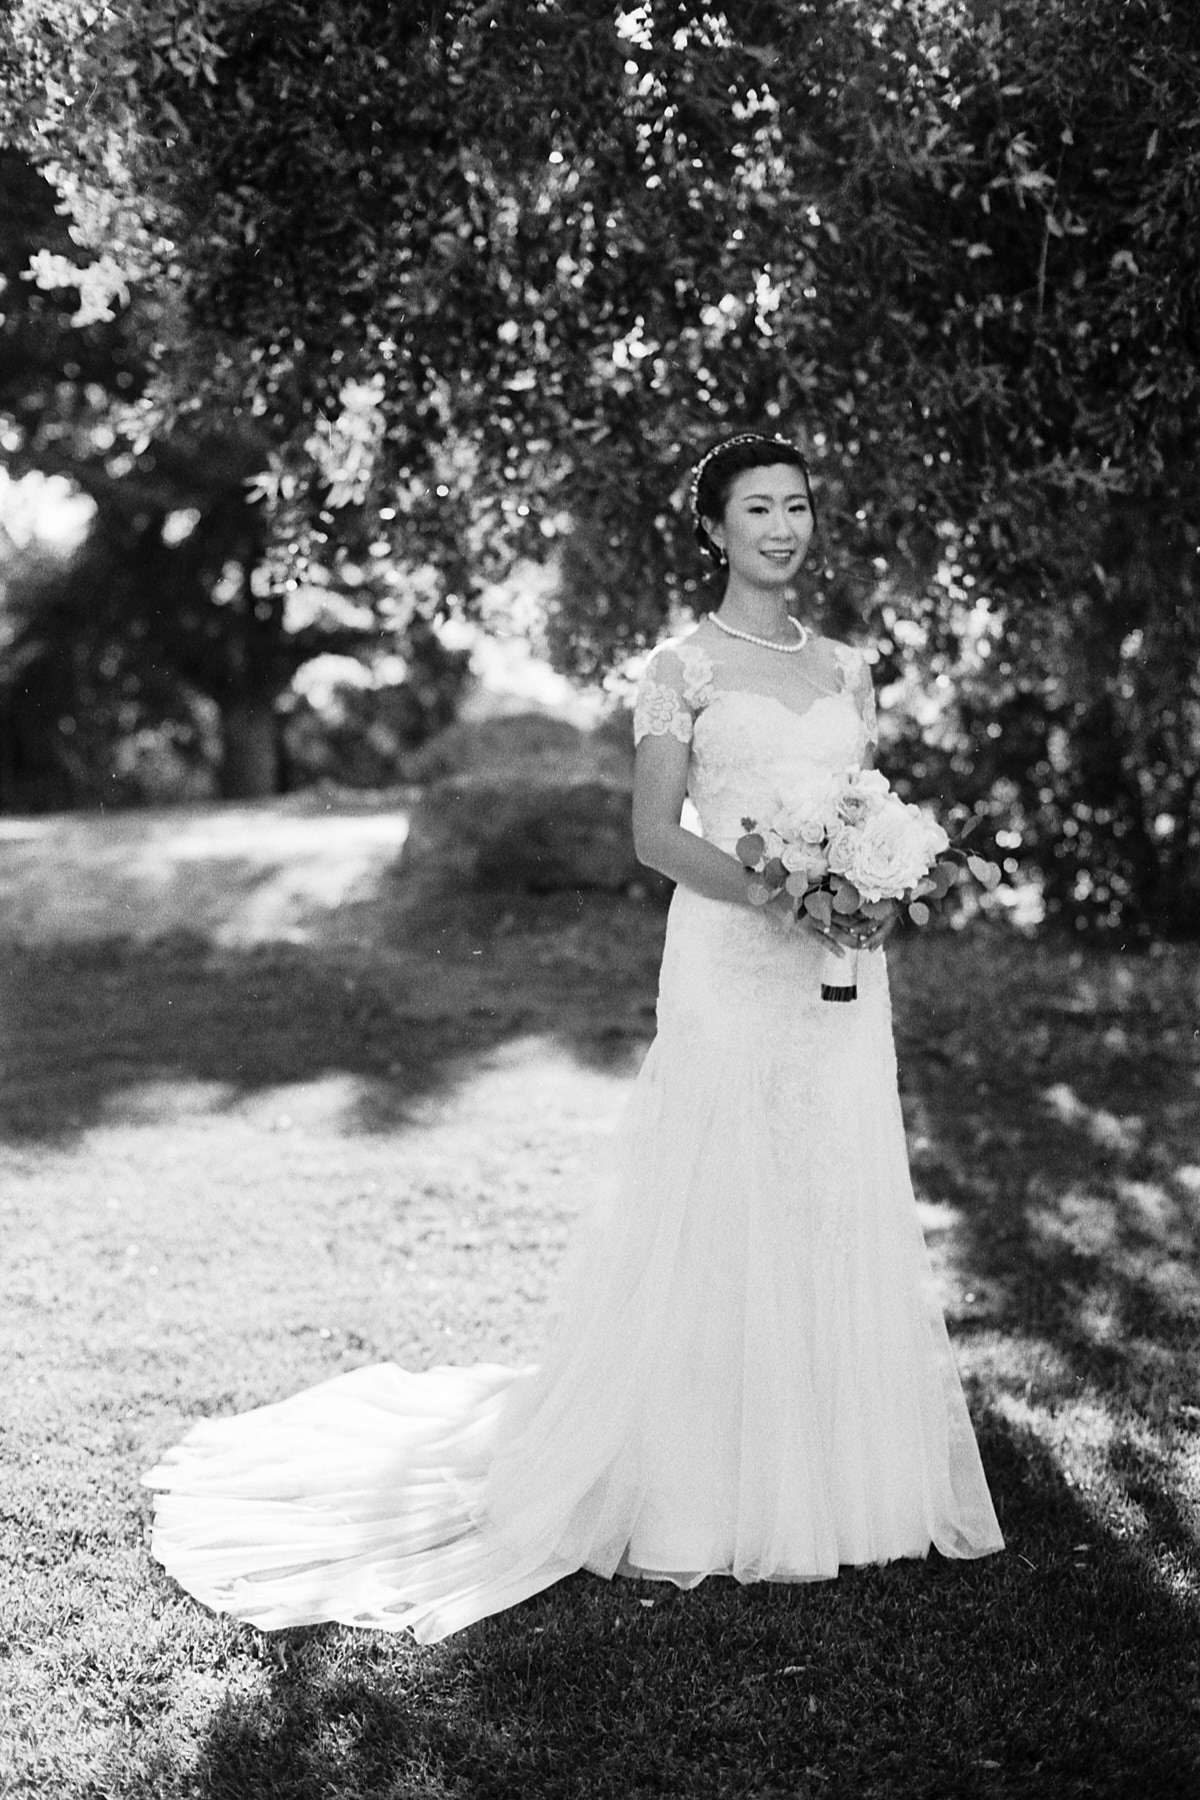 Quail Ranch bride portrait Ilford HP5 Nikon FE2